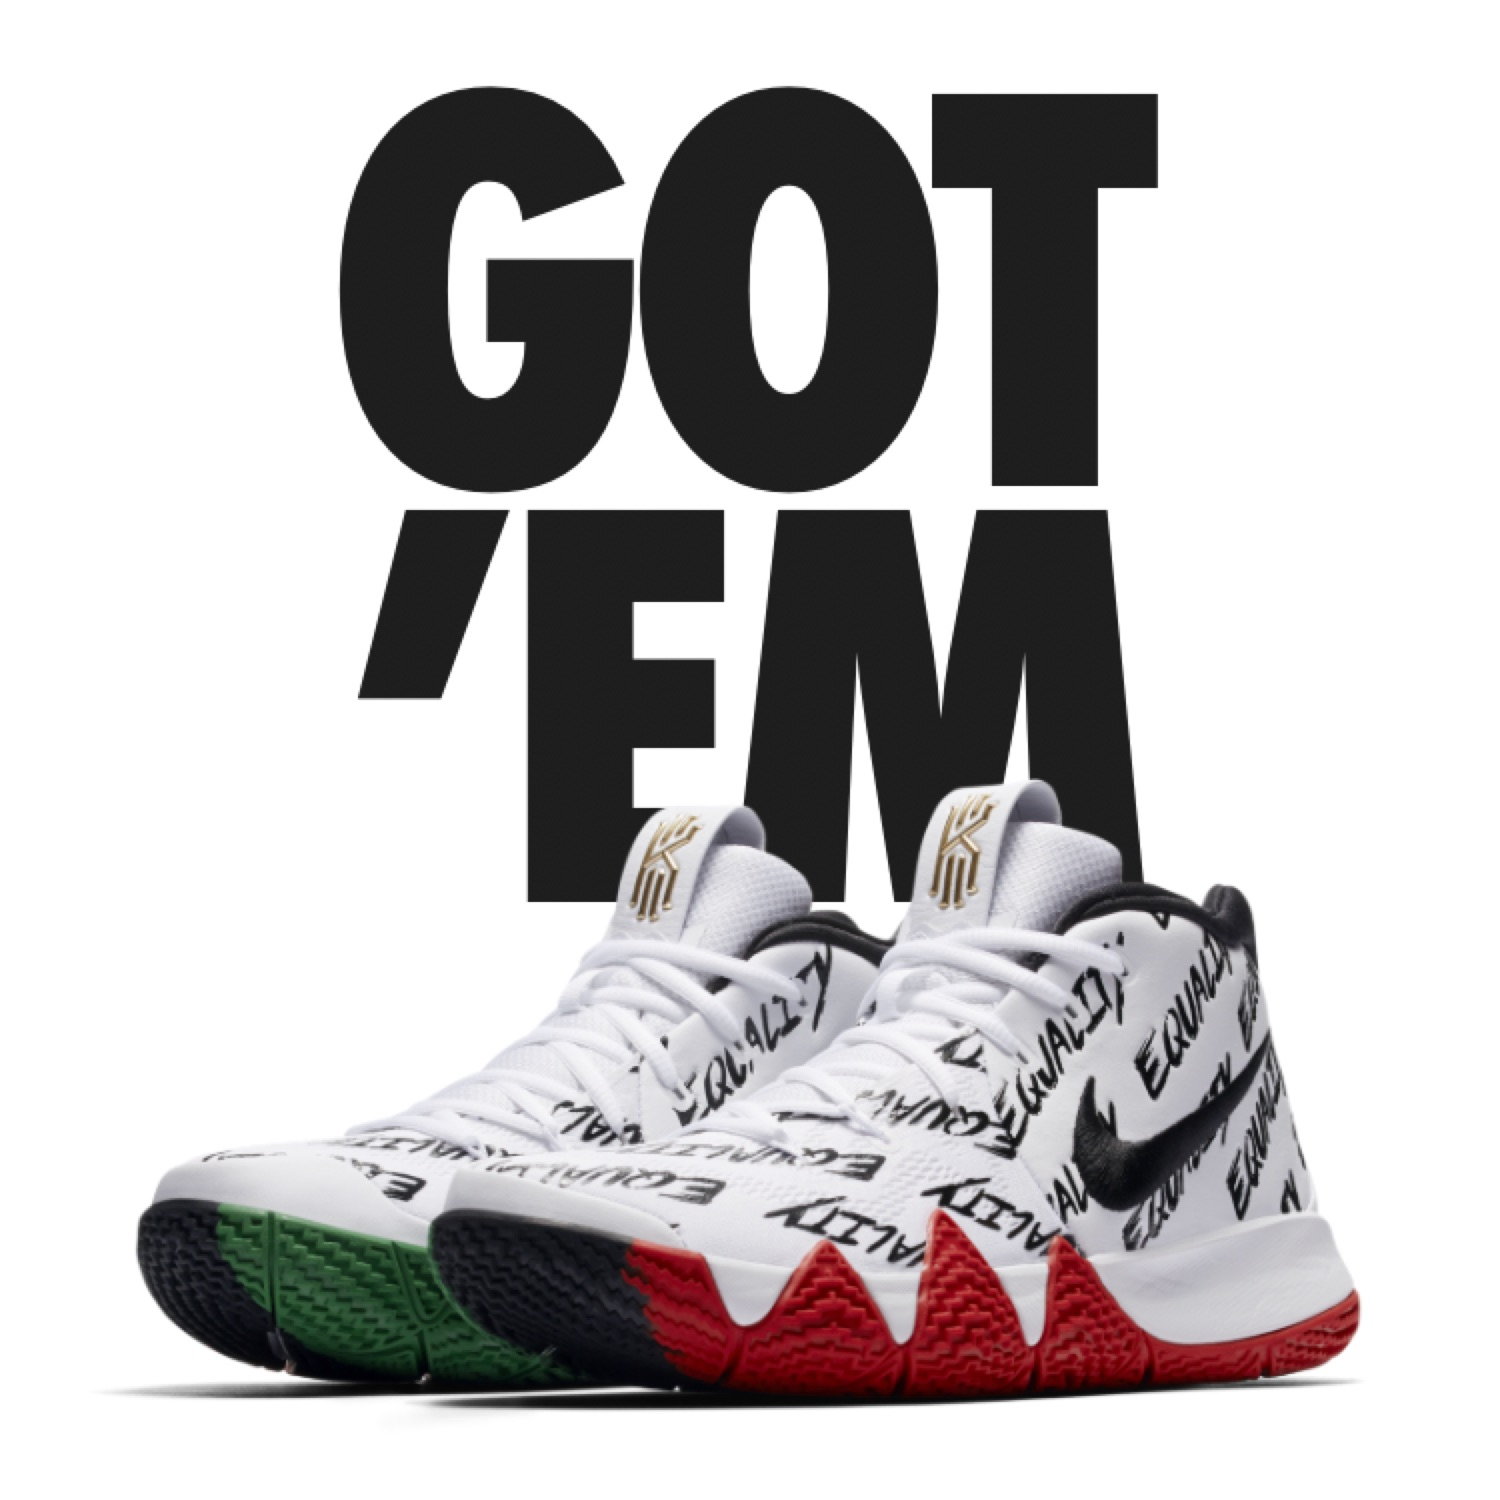 low priced c62fe 3f10d Kyrie 4 Bhm Equality Bhm Size 10.5 2018